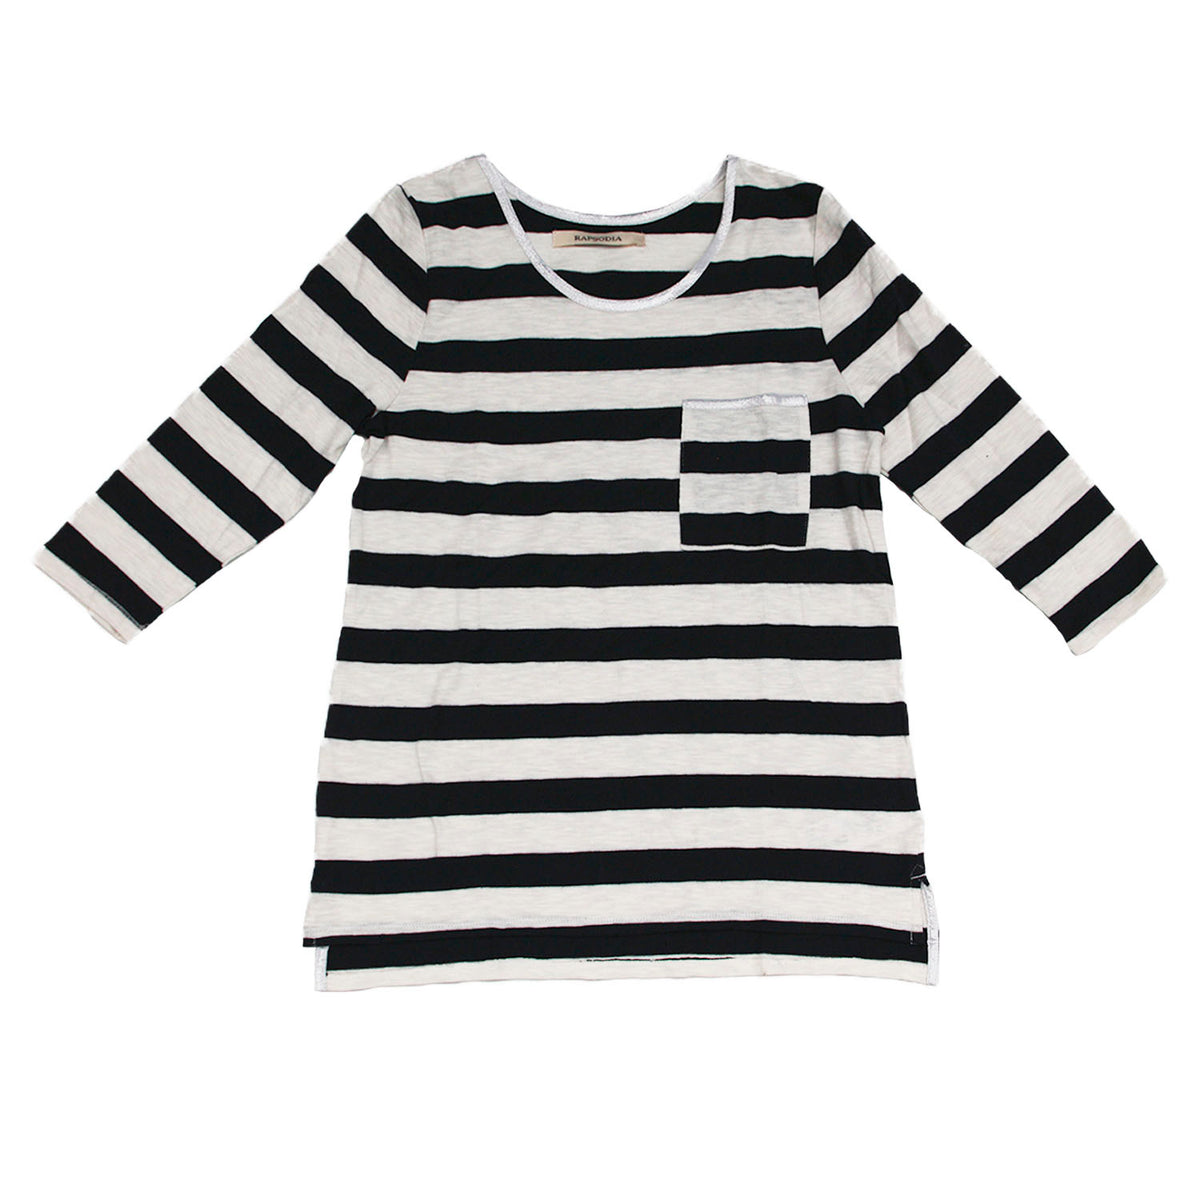 Polera Rapsodia  Mix Stripes Negro